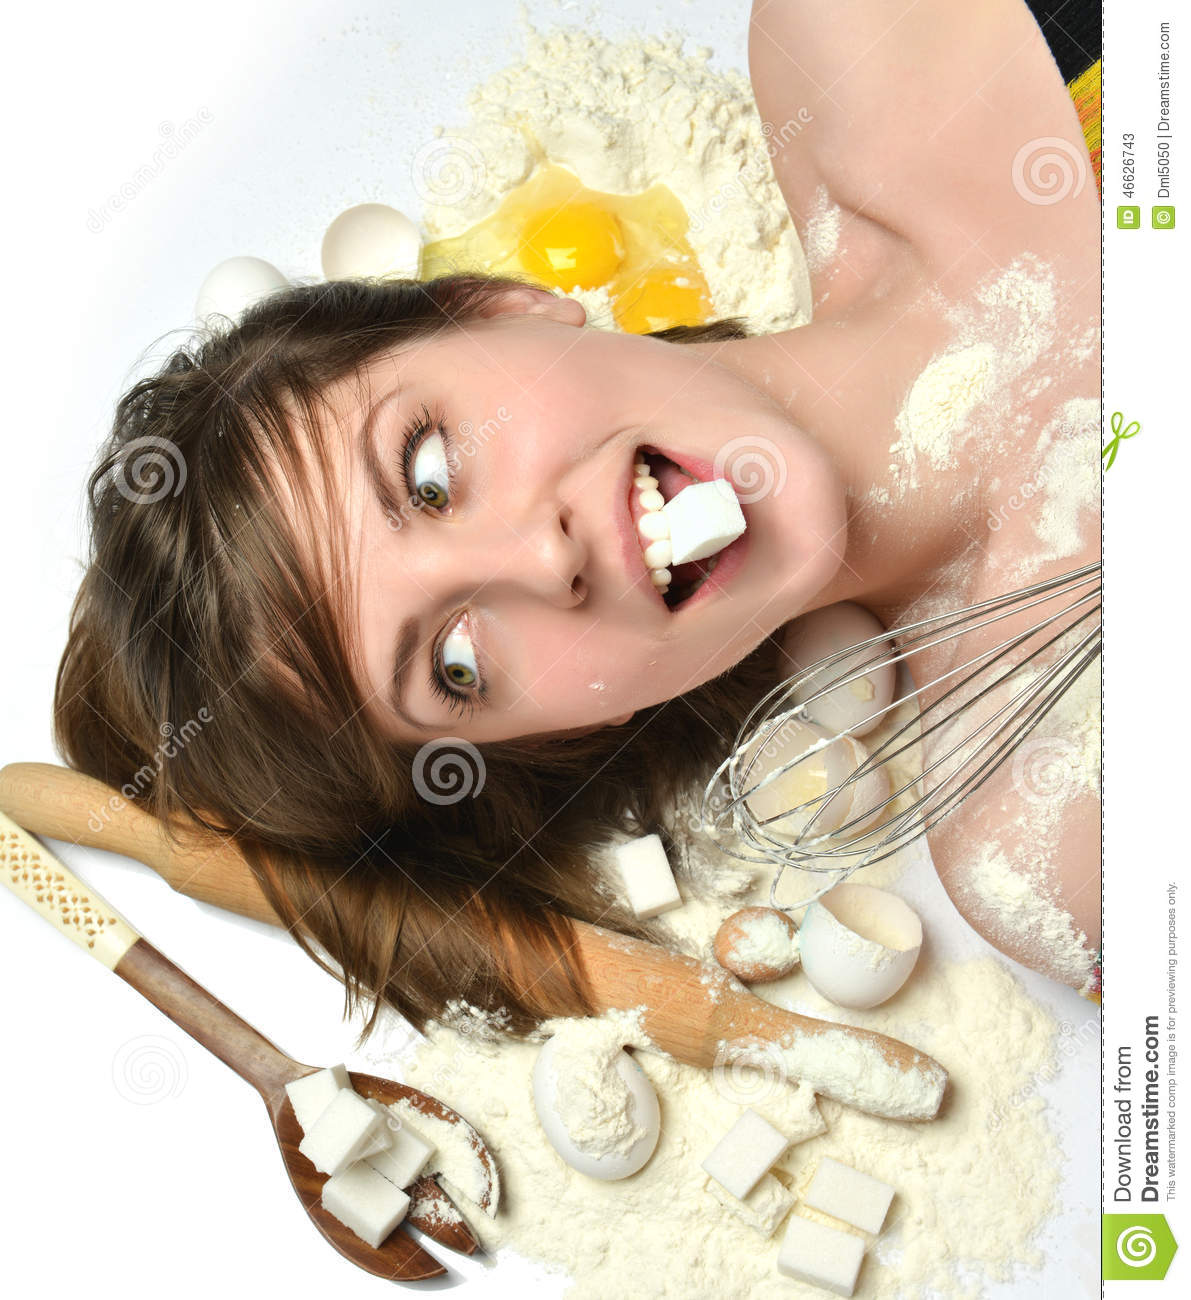 Kitchen Shears In Baking: Cooking Woman Chef Royalty-Free Stock Image